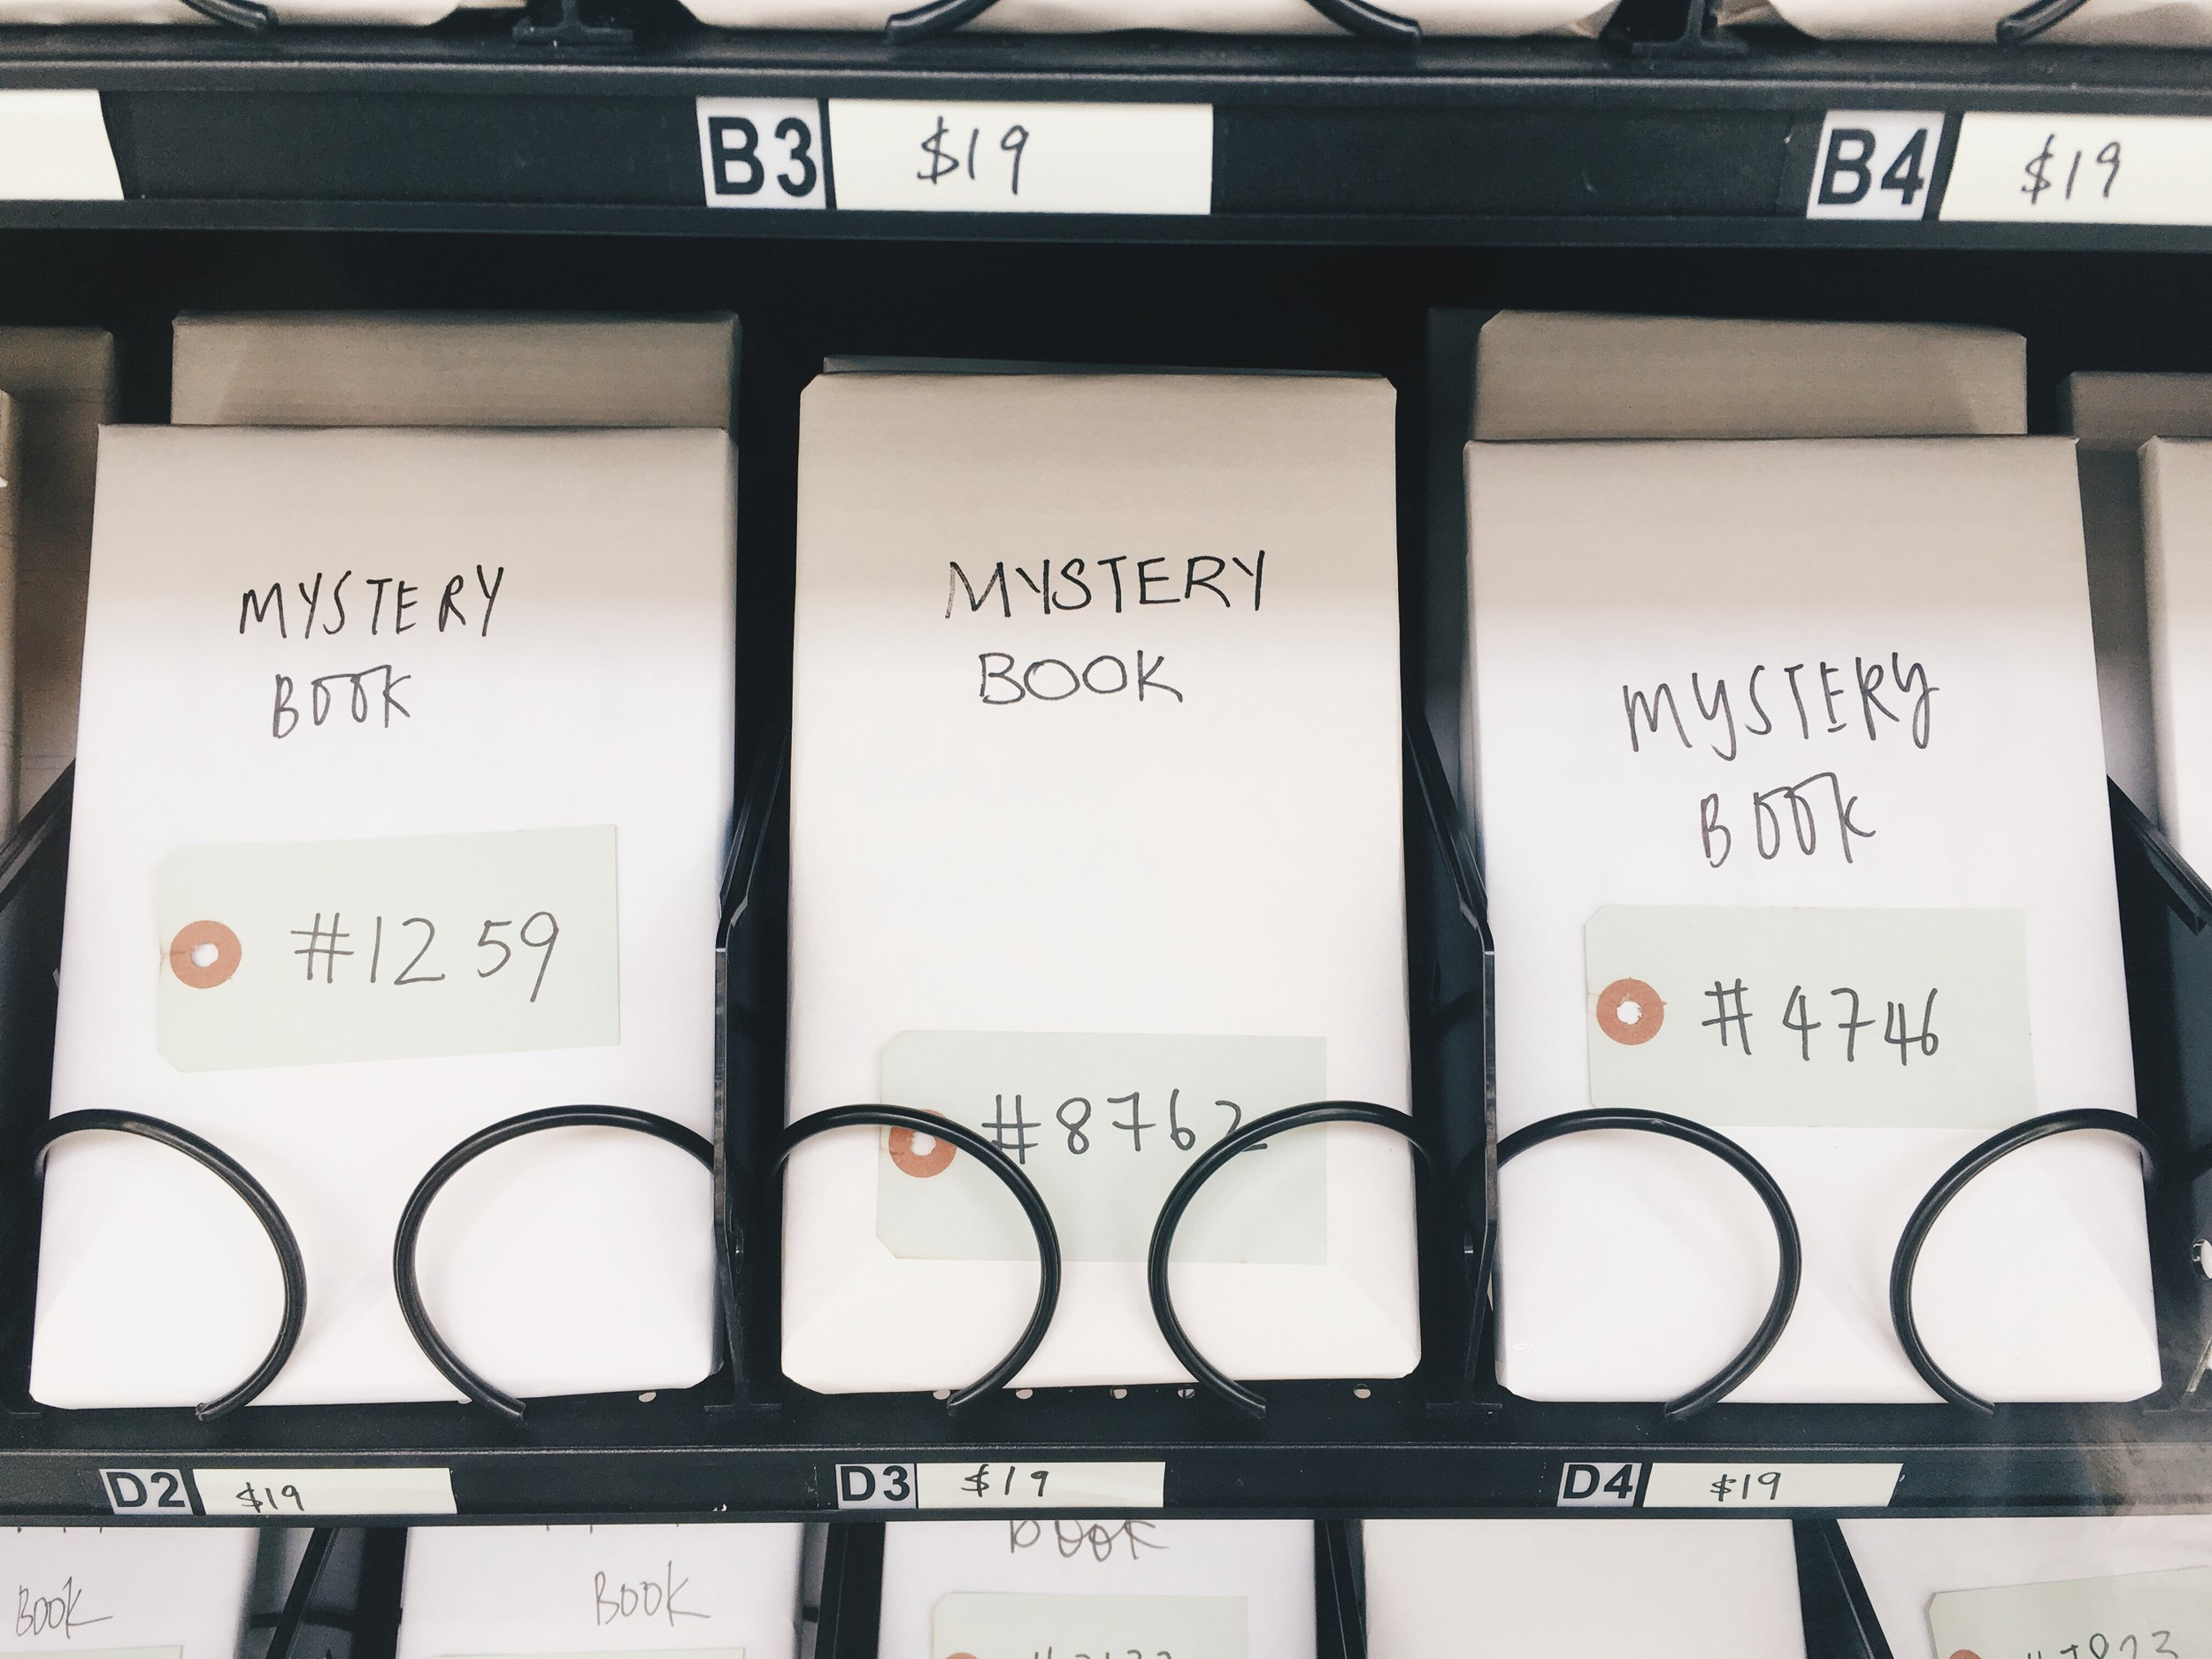 Mystery books sold by BooksActually